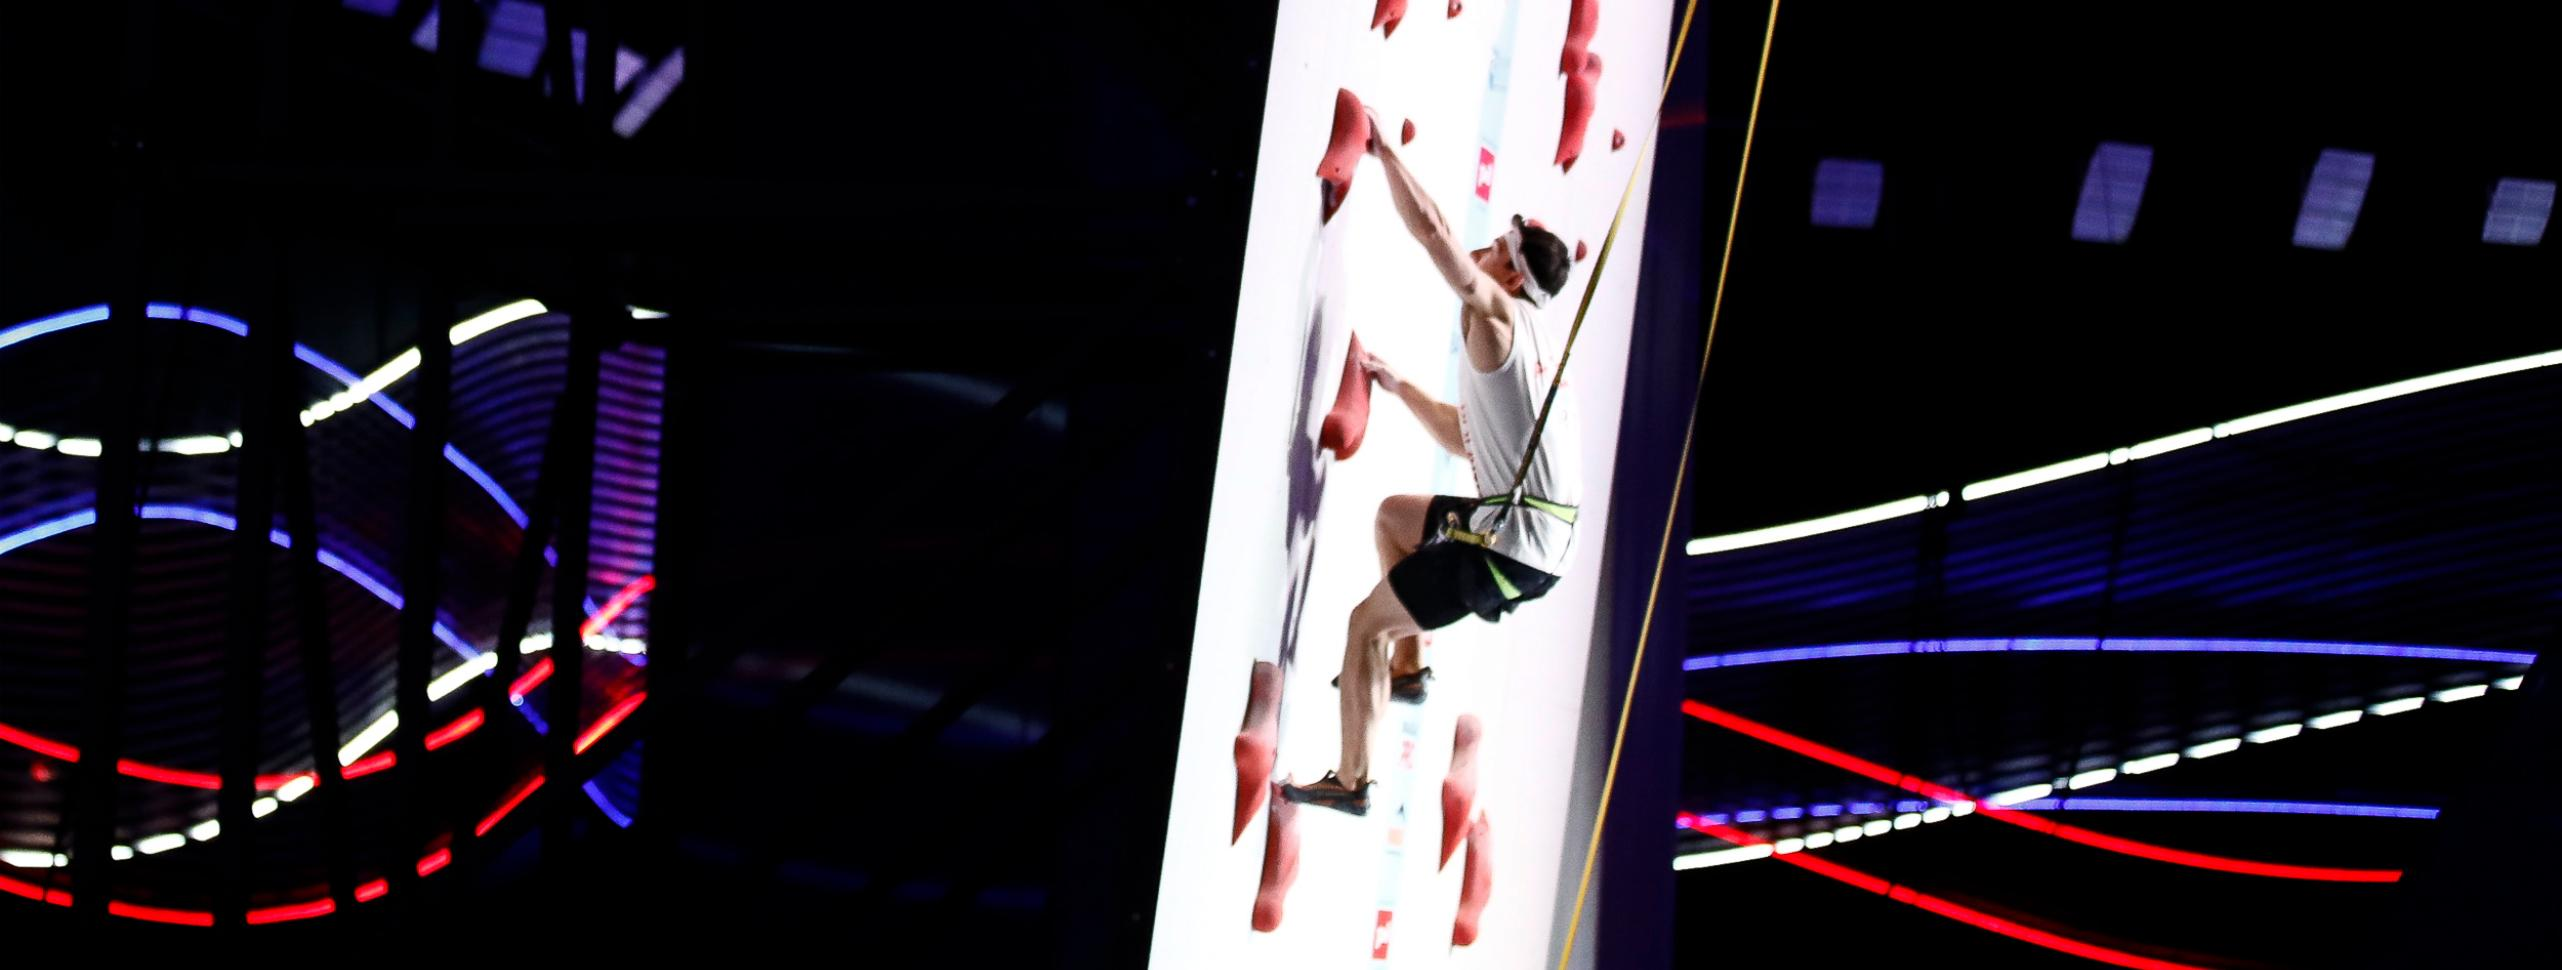 2021 IFSC CLIMBING WORLD CHAMPIONSHIPS TO TAKE PLACE IN MOSCOW AS SCHEDULED